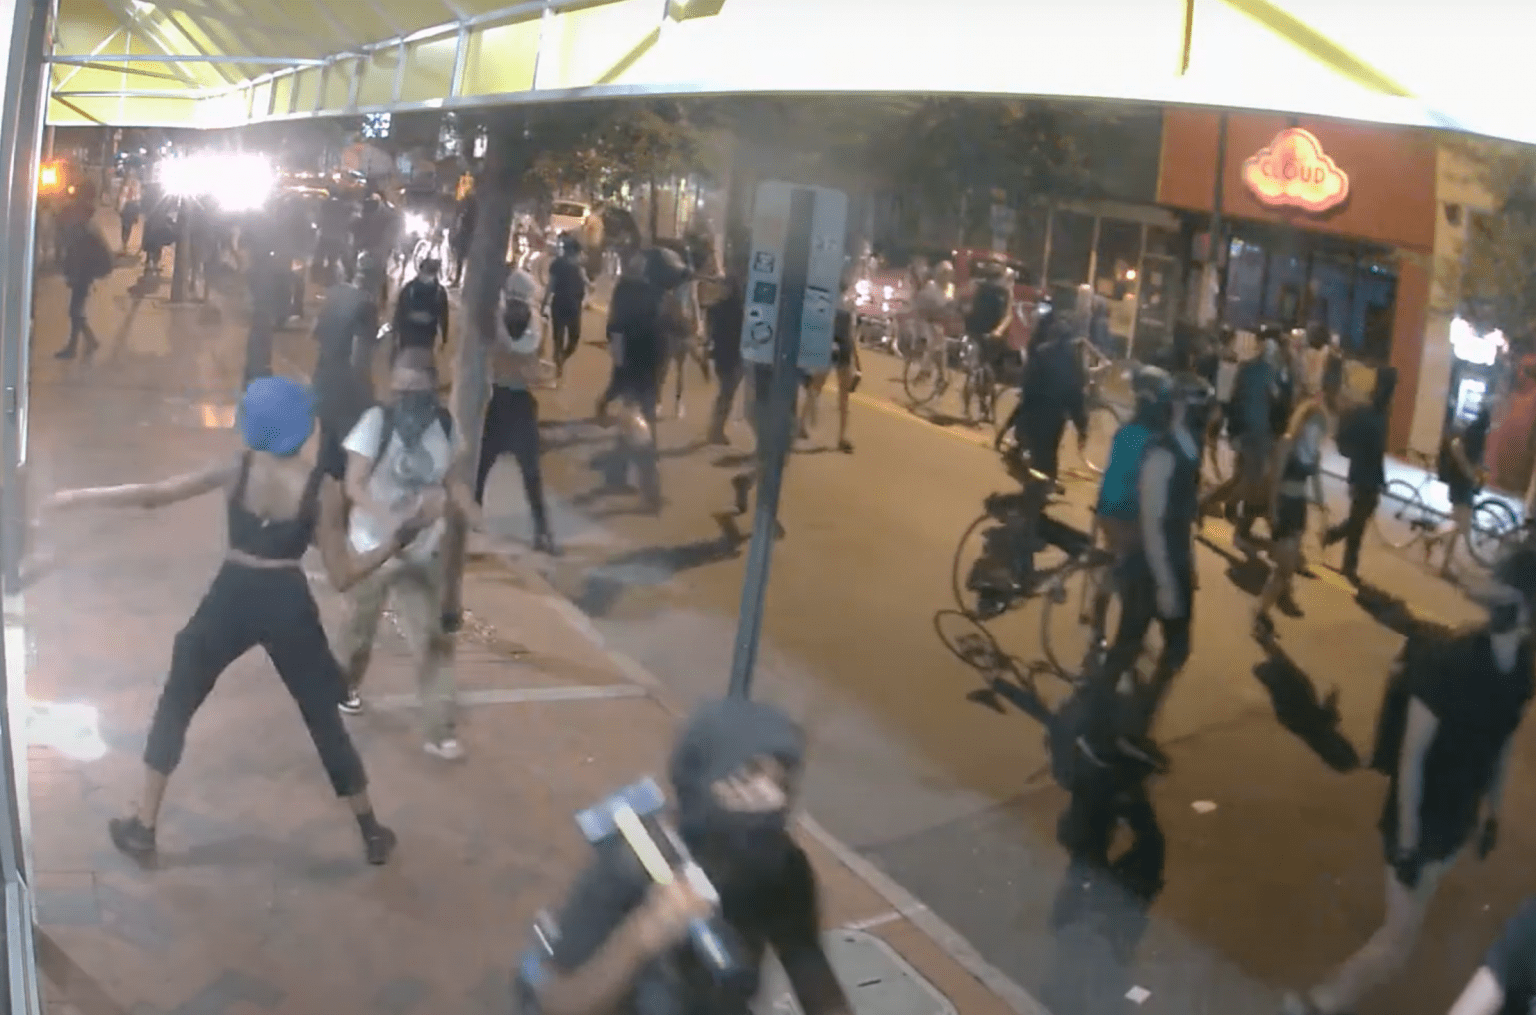 Virginia Commonwealth University sees $100K in damages from violent protests over the weekend